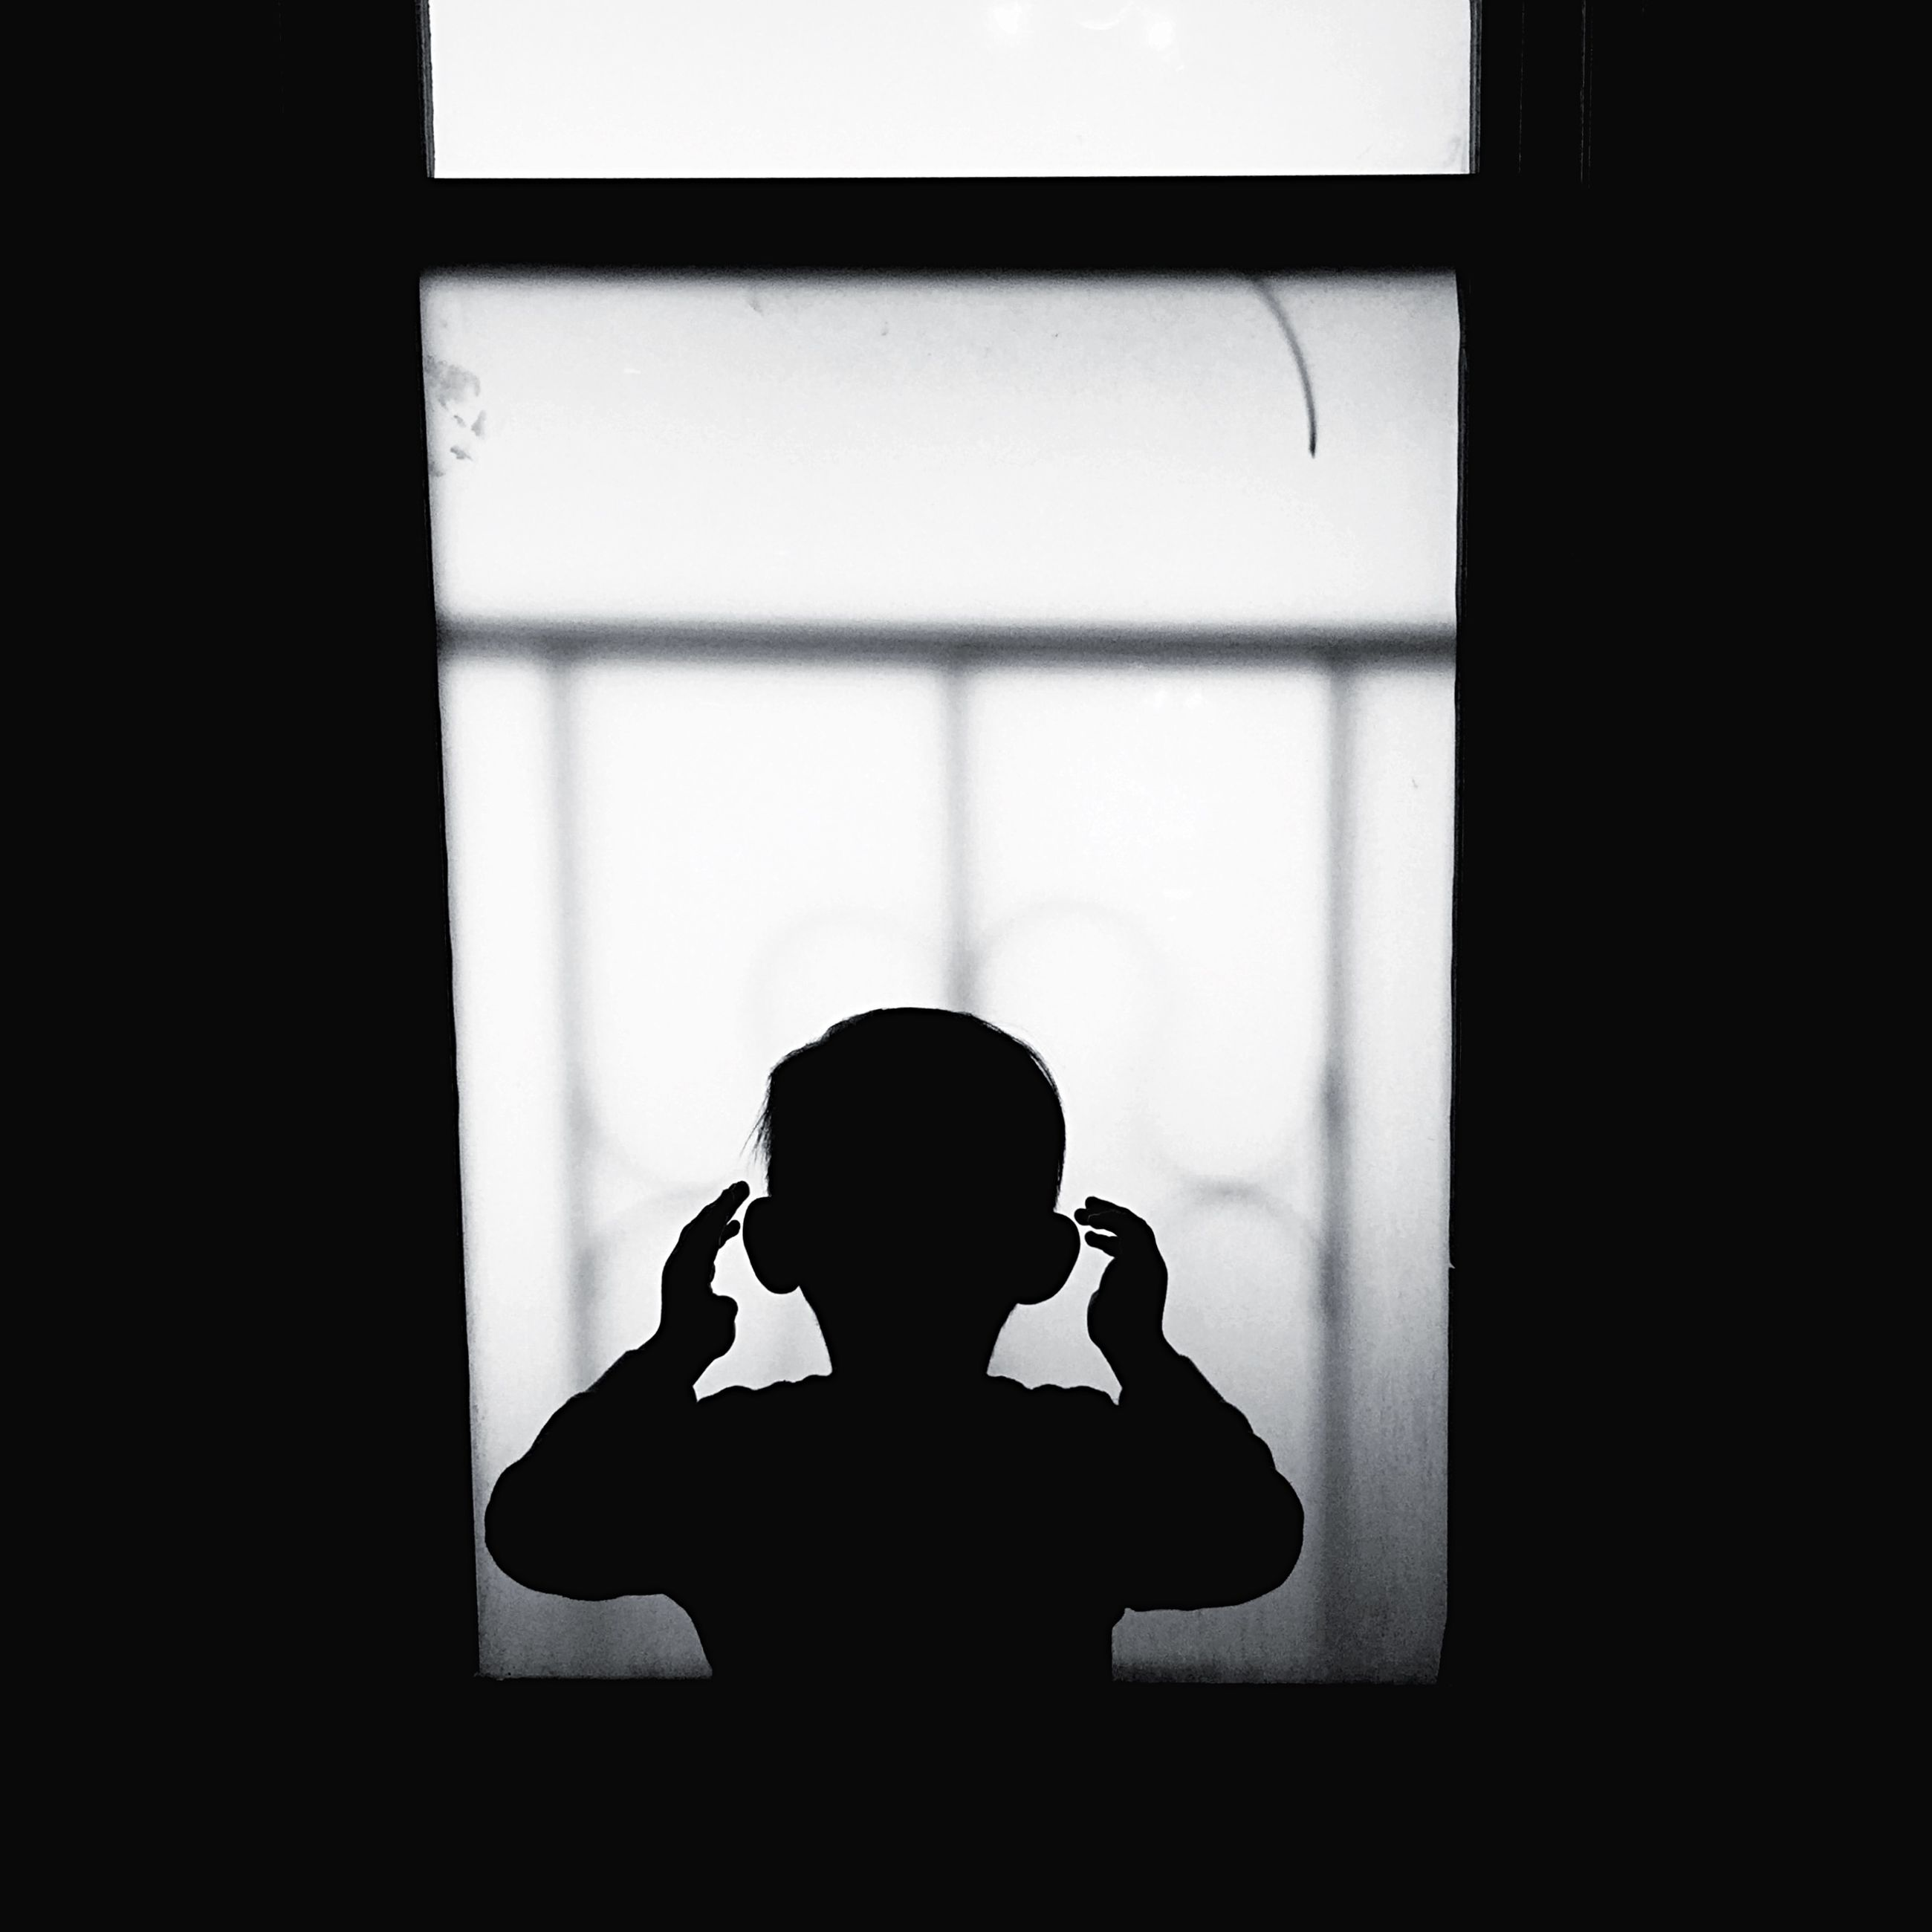 indoors, window, home interior, silhouette, dark, technology, sitting, lifestyles, men, wireless technology, holding, photography themes, wall - building feature, communication, shadow, darkroom, domestic room, copy space